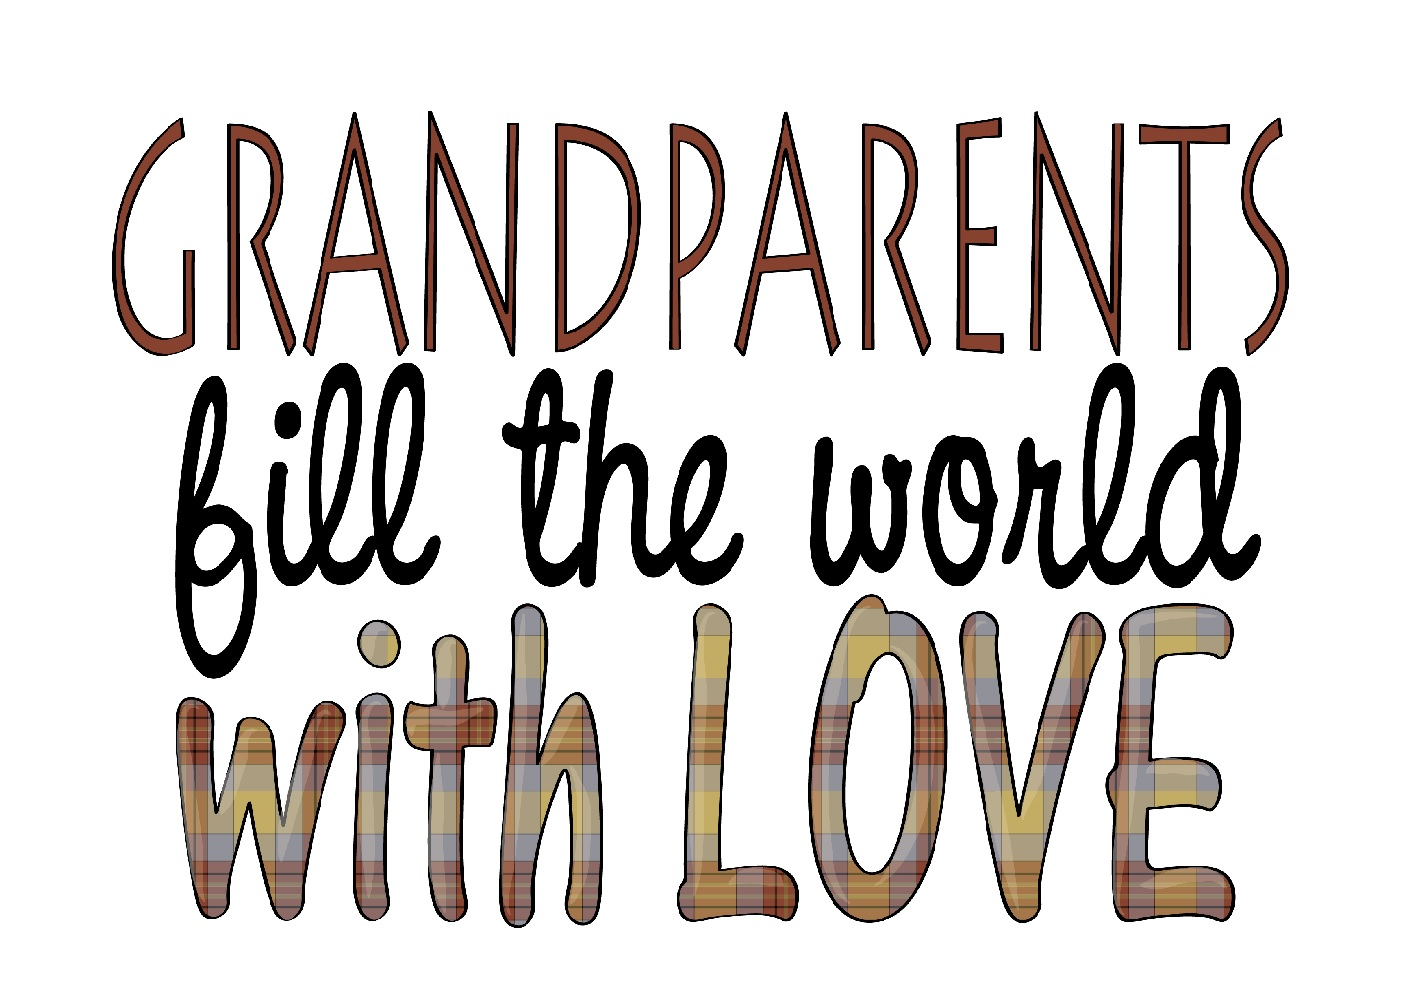 Appreciating Grandparents